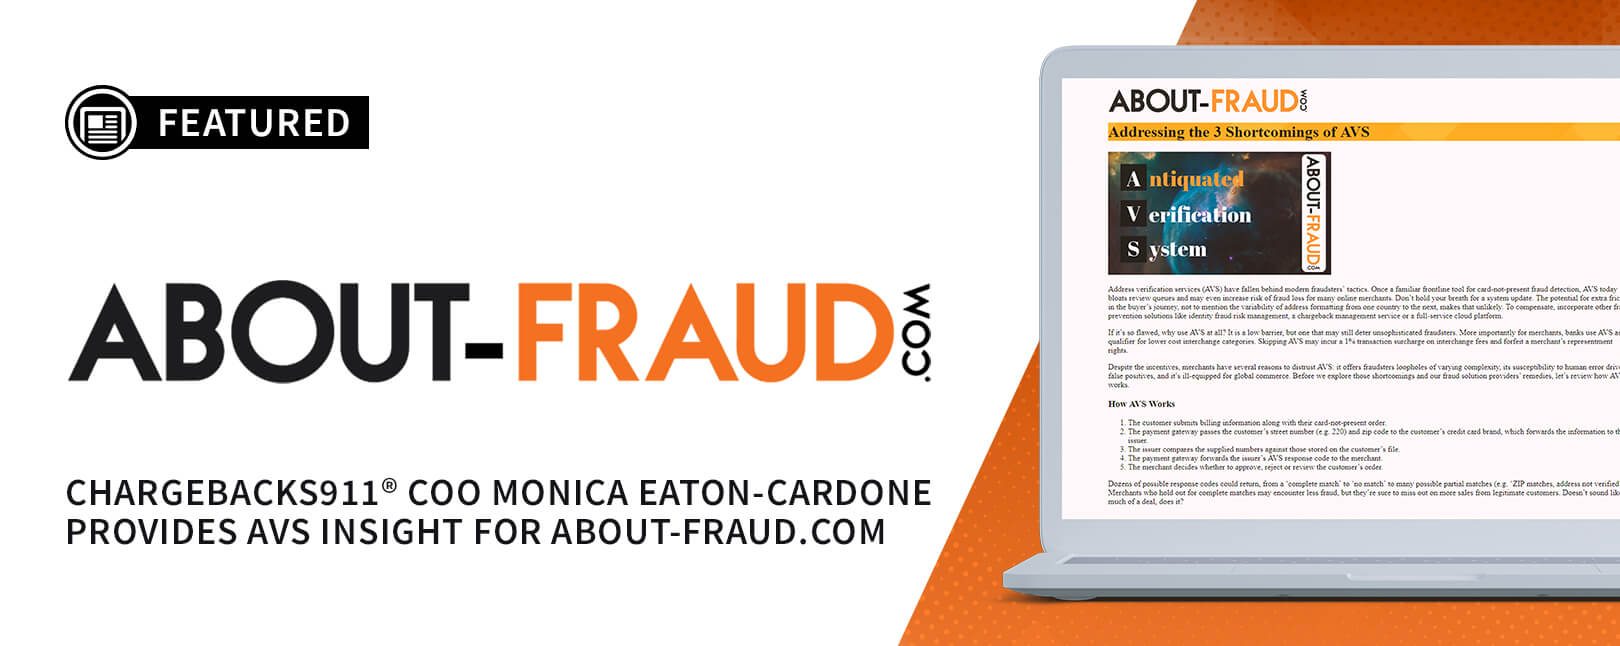 AVS Insight for About-Fraud Com